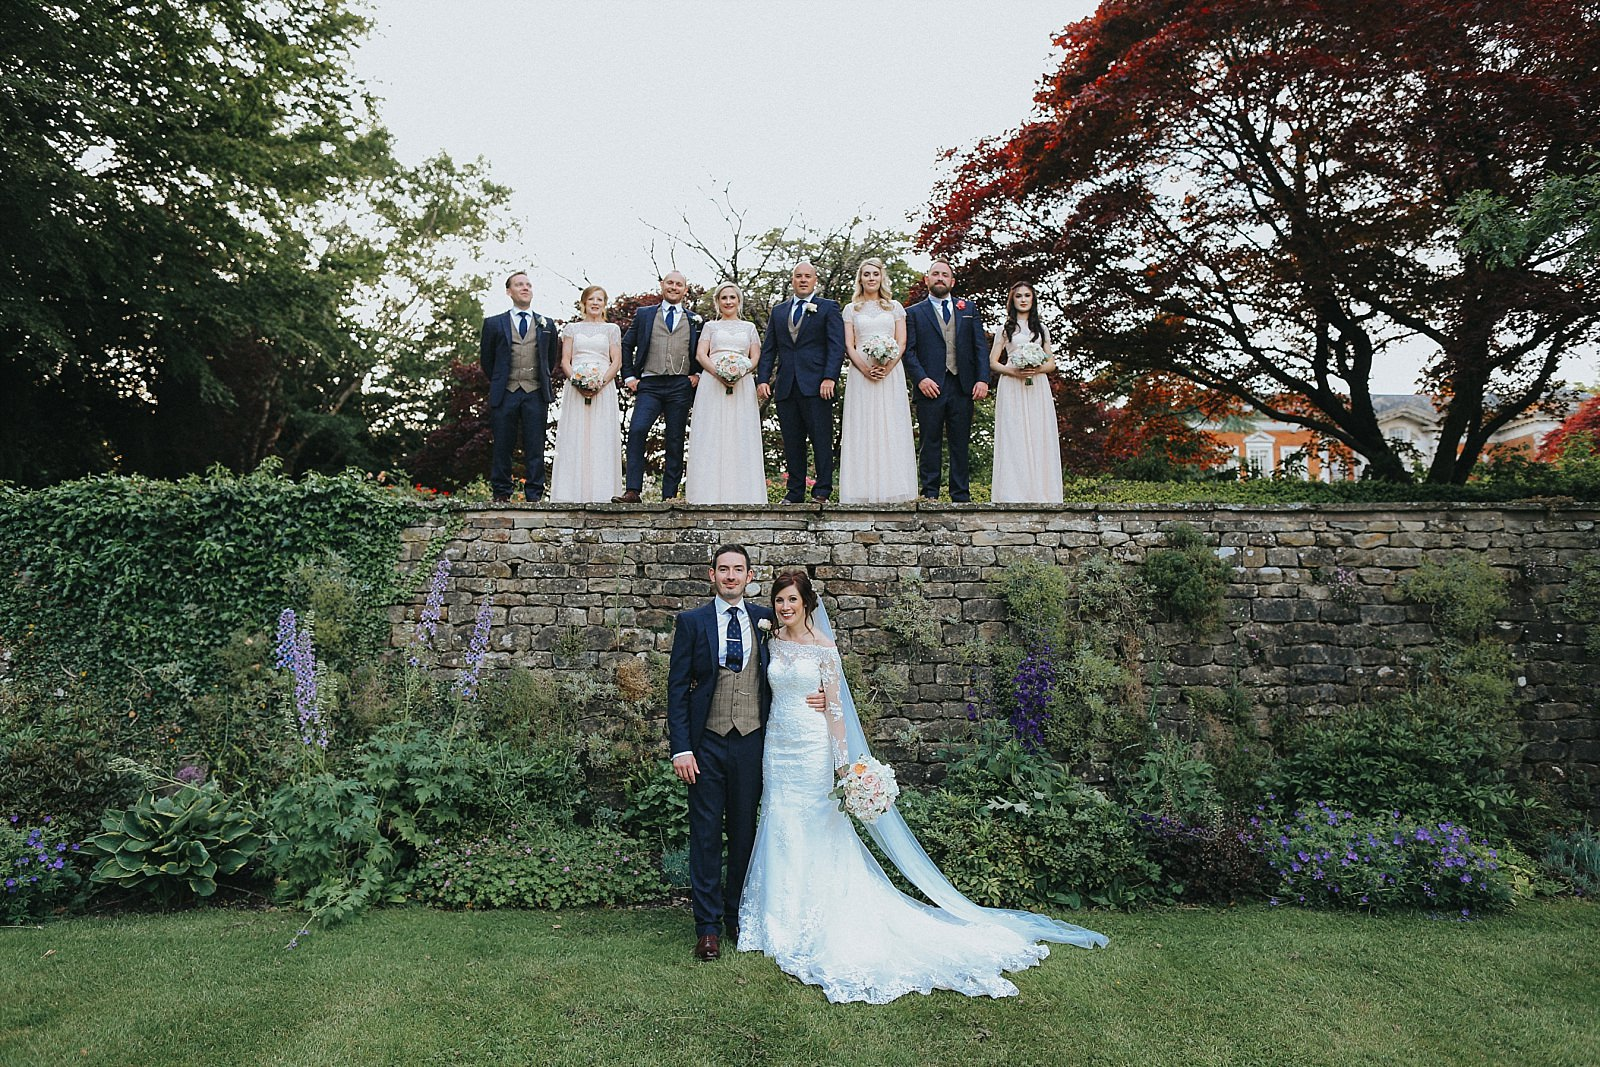 eaves hall wedding photographer captures the bridal party